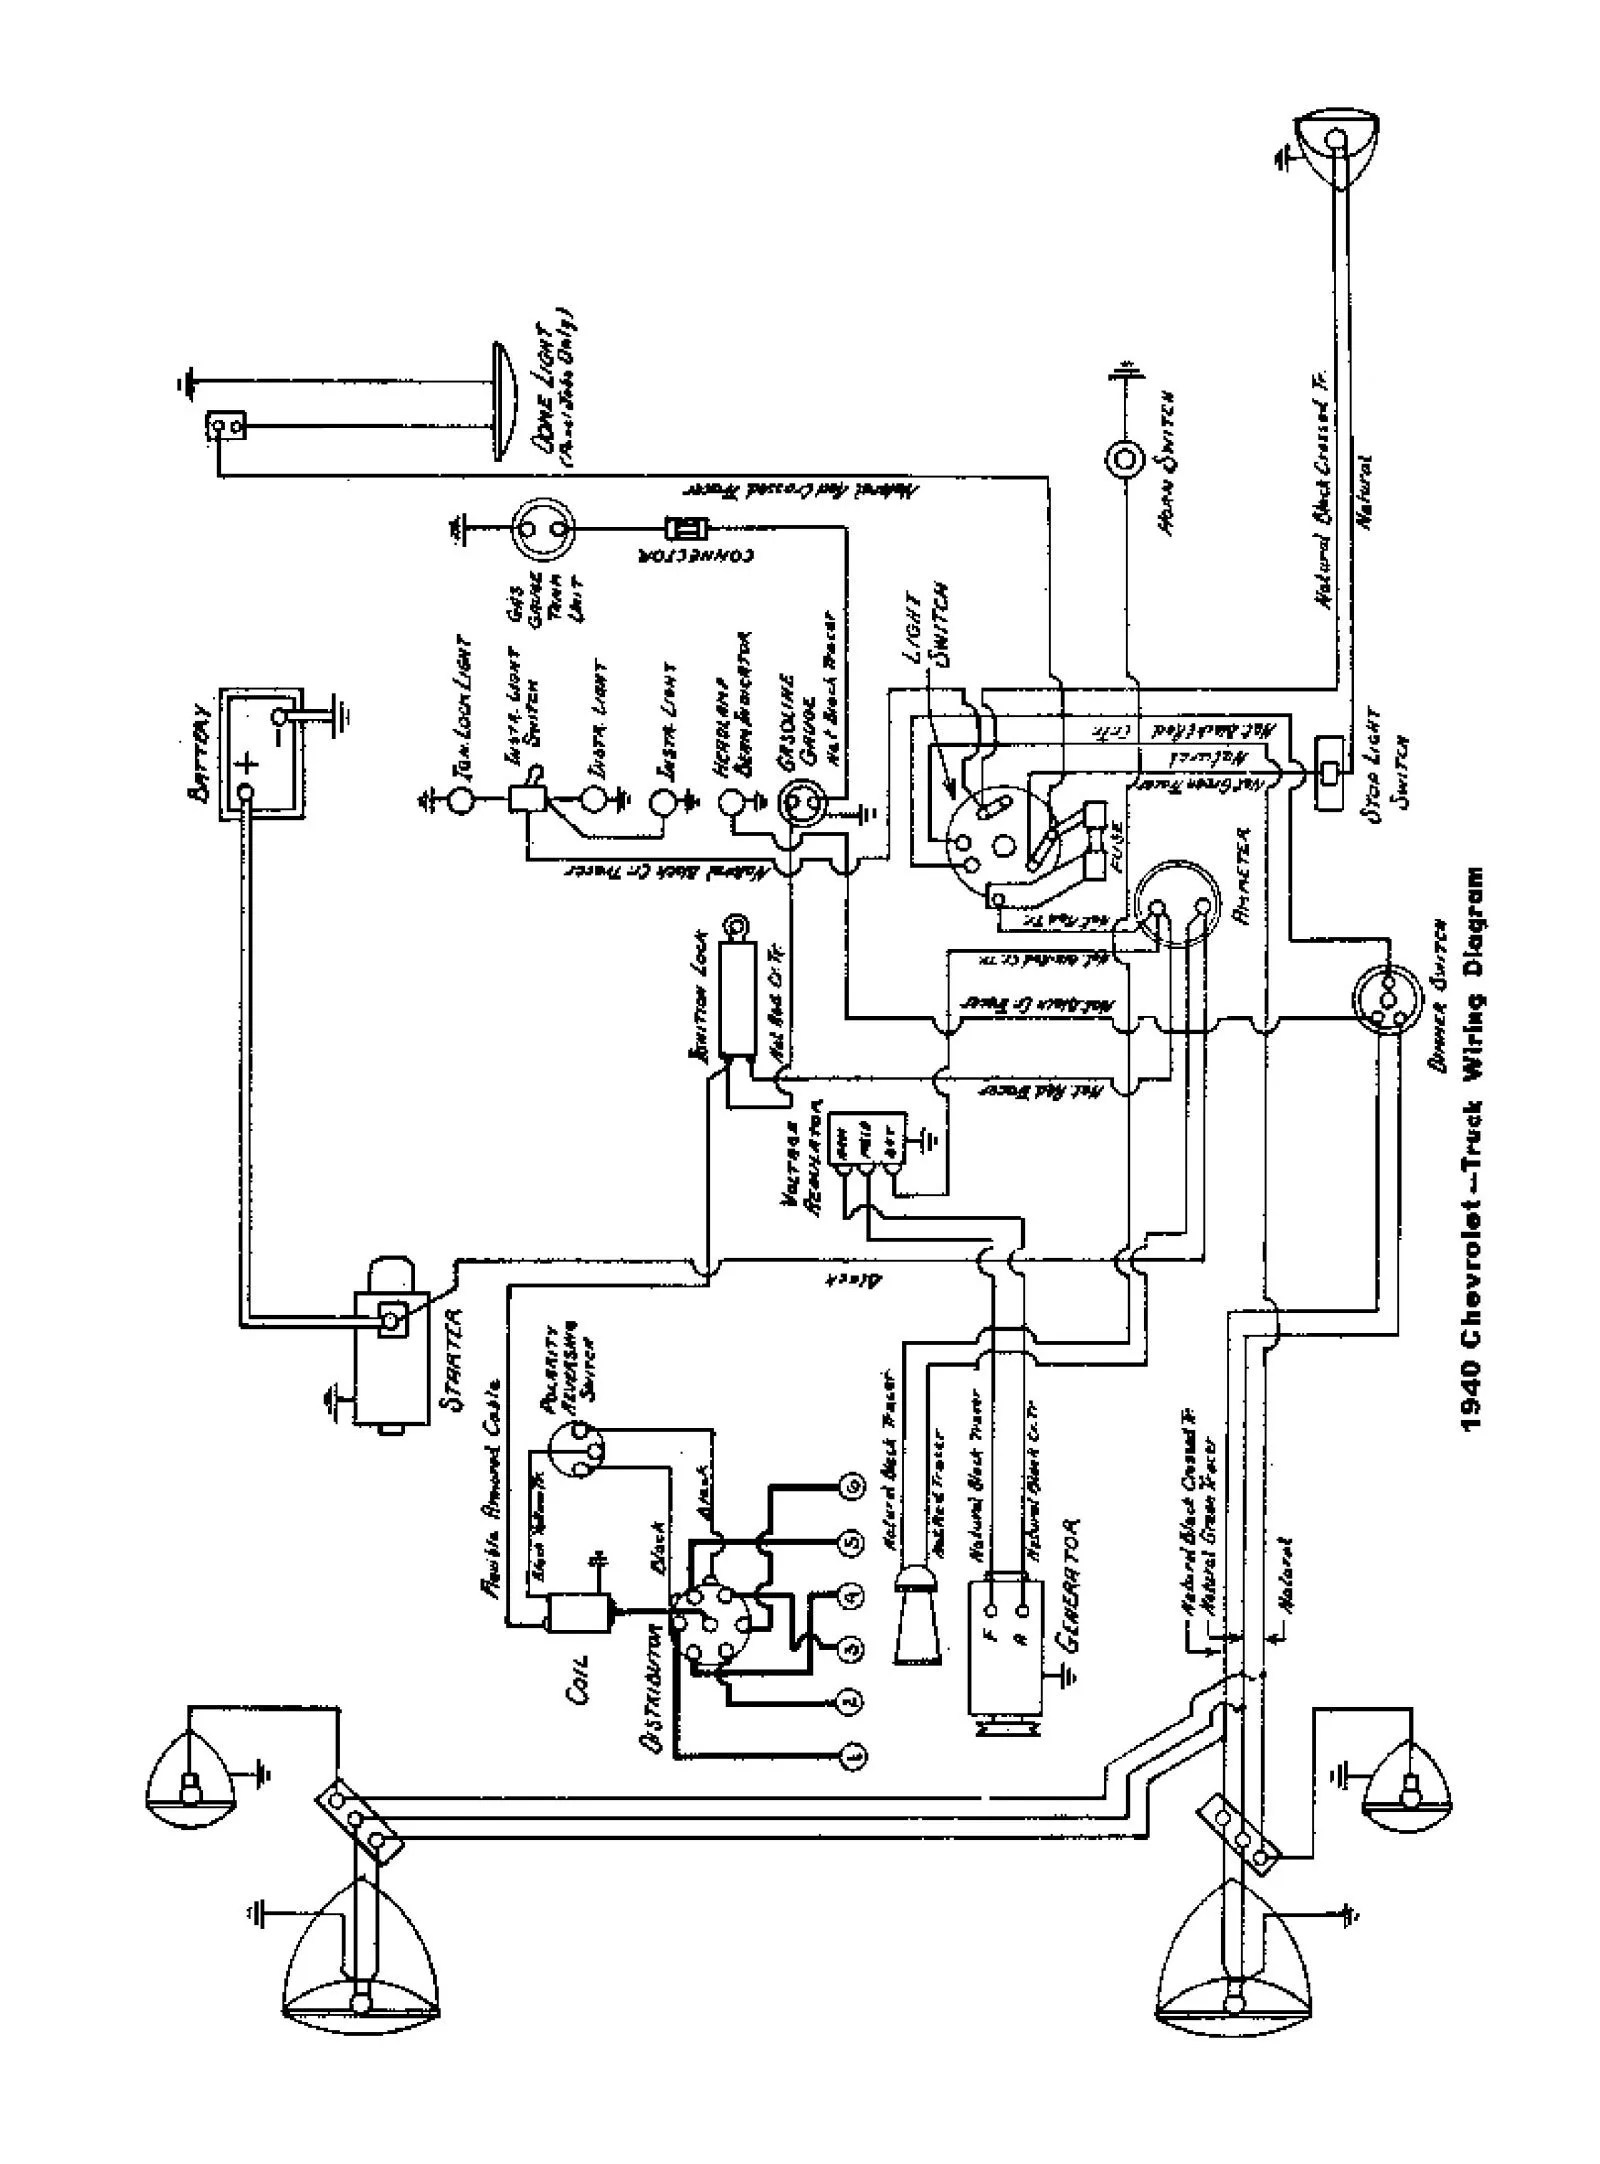 small resolution of 1938 buick wiring diagram wiring diagram blog 1938 buick wiring diagram